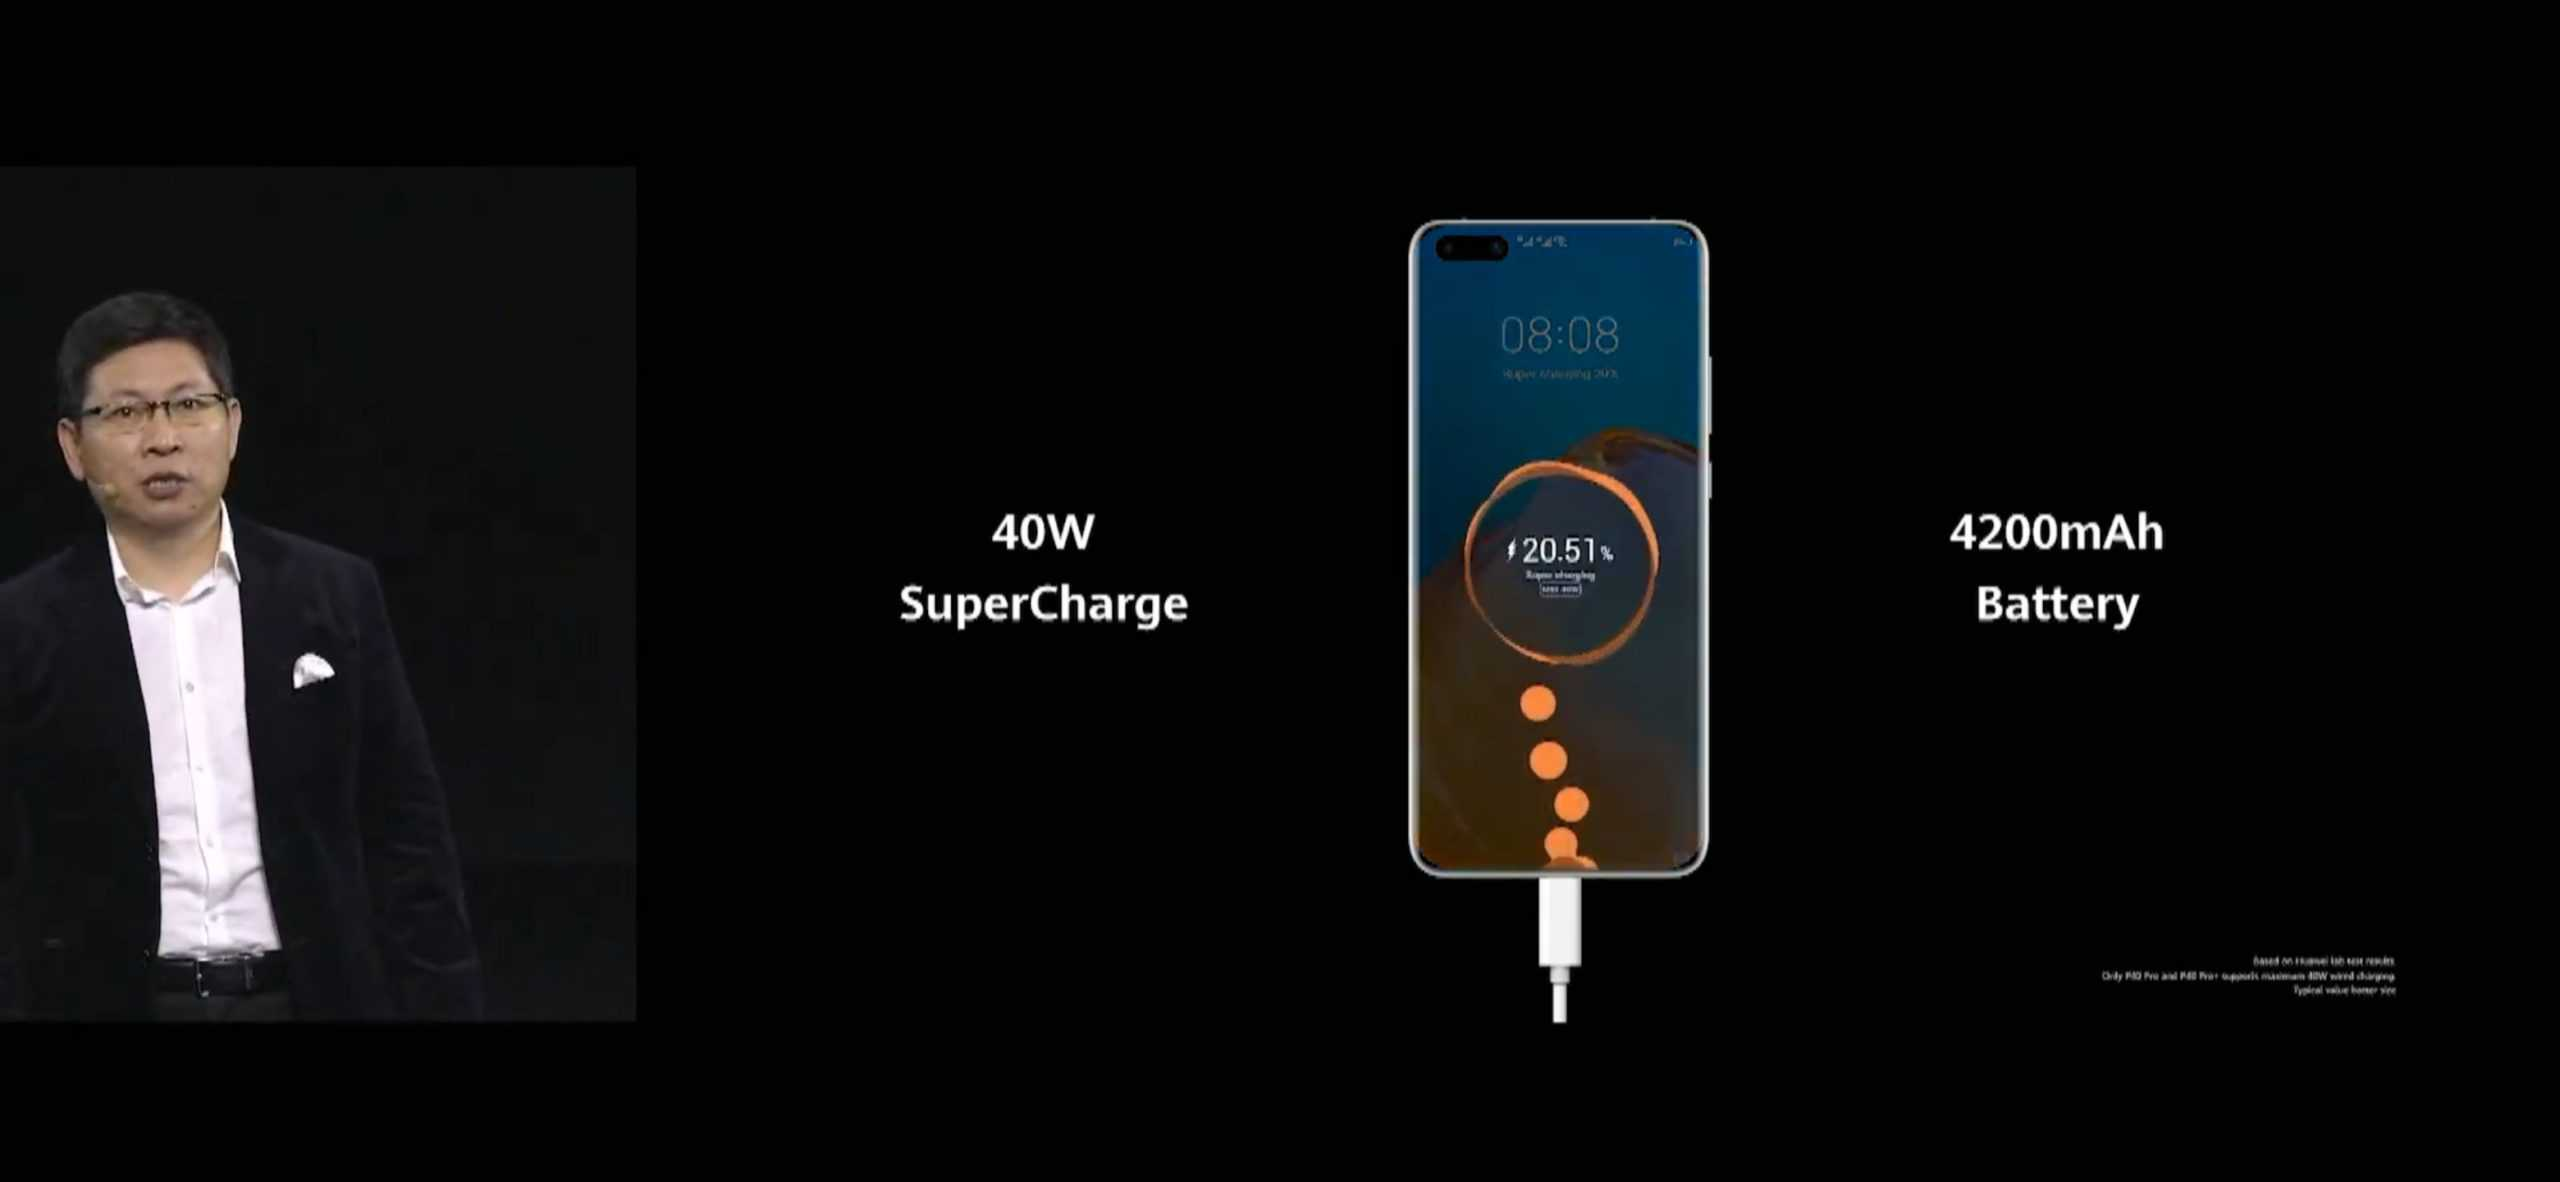 Huawei P40 series 40W SuperCharge